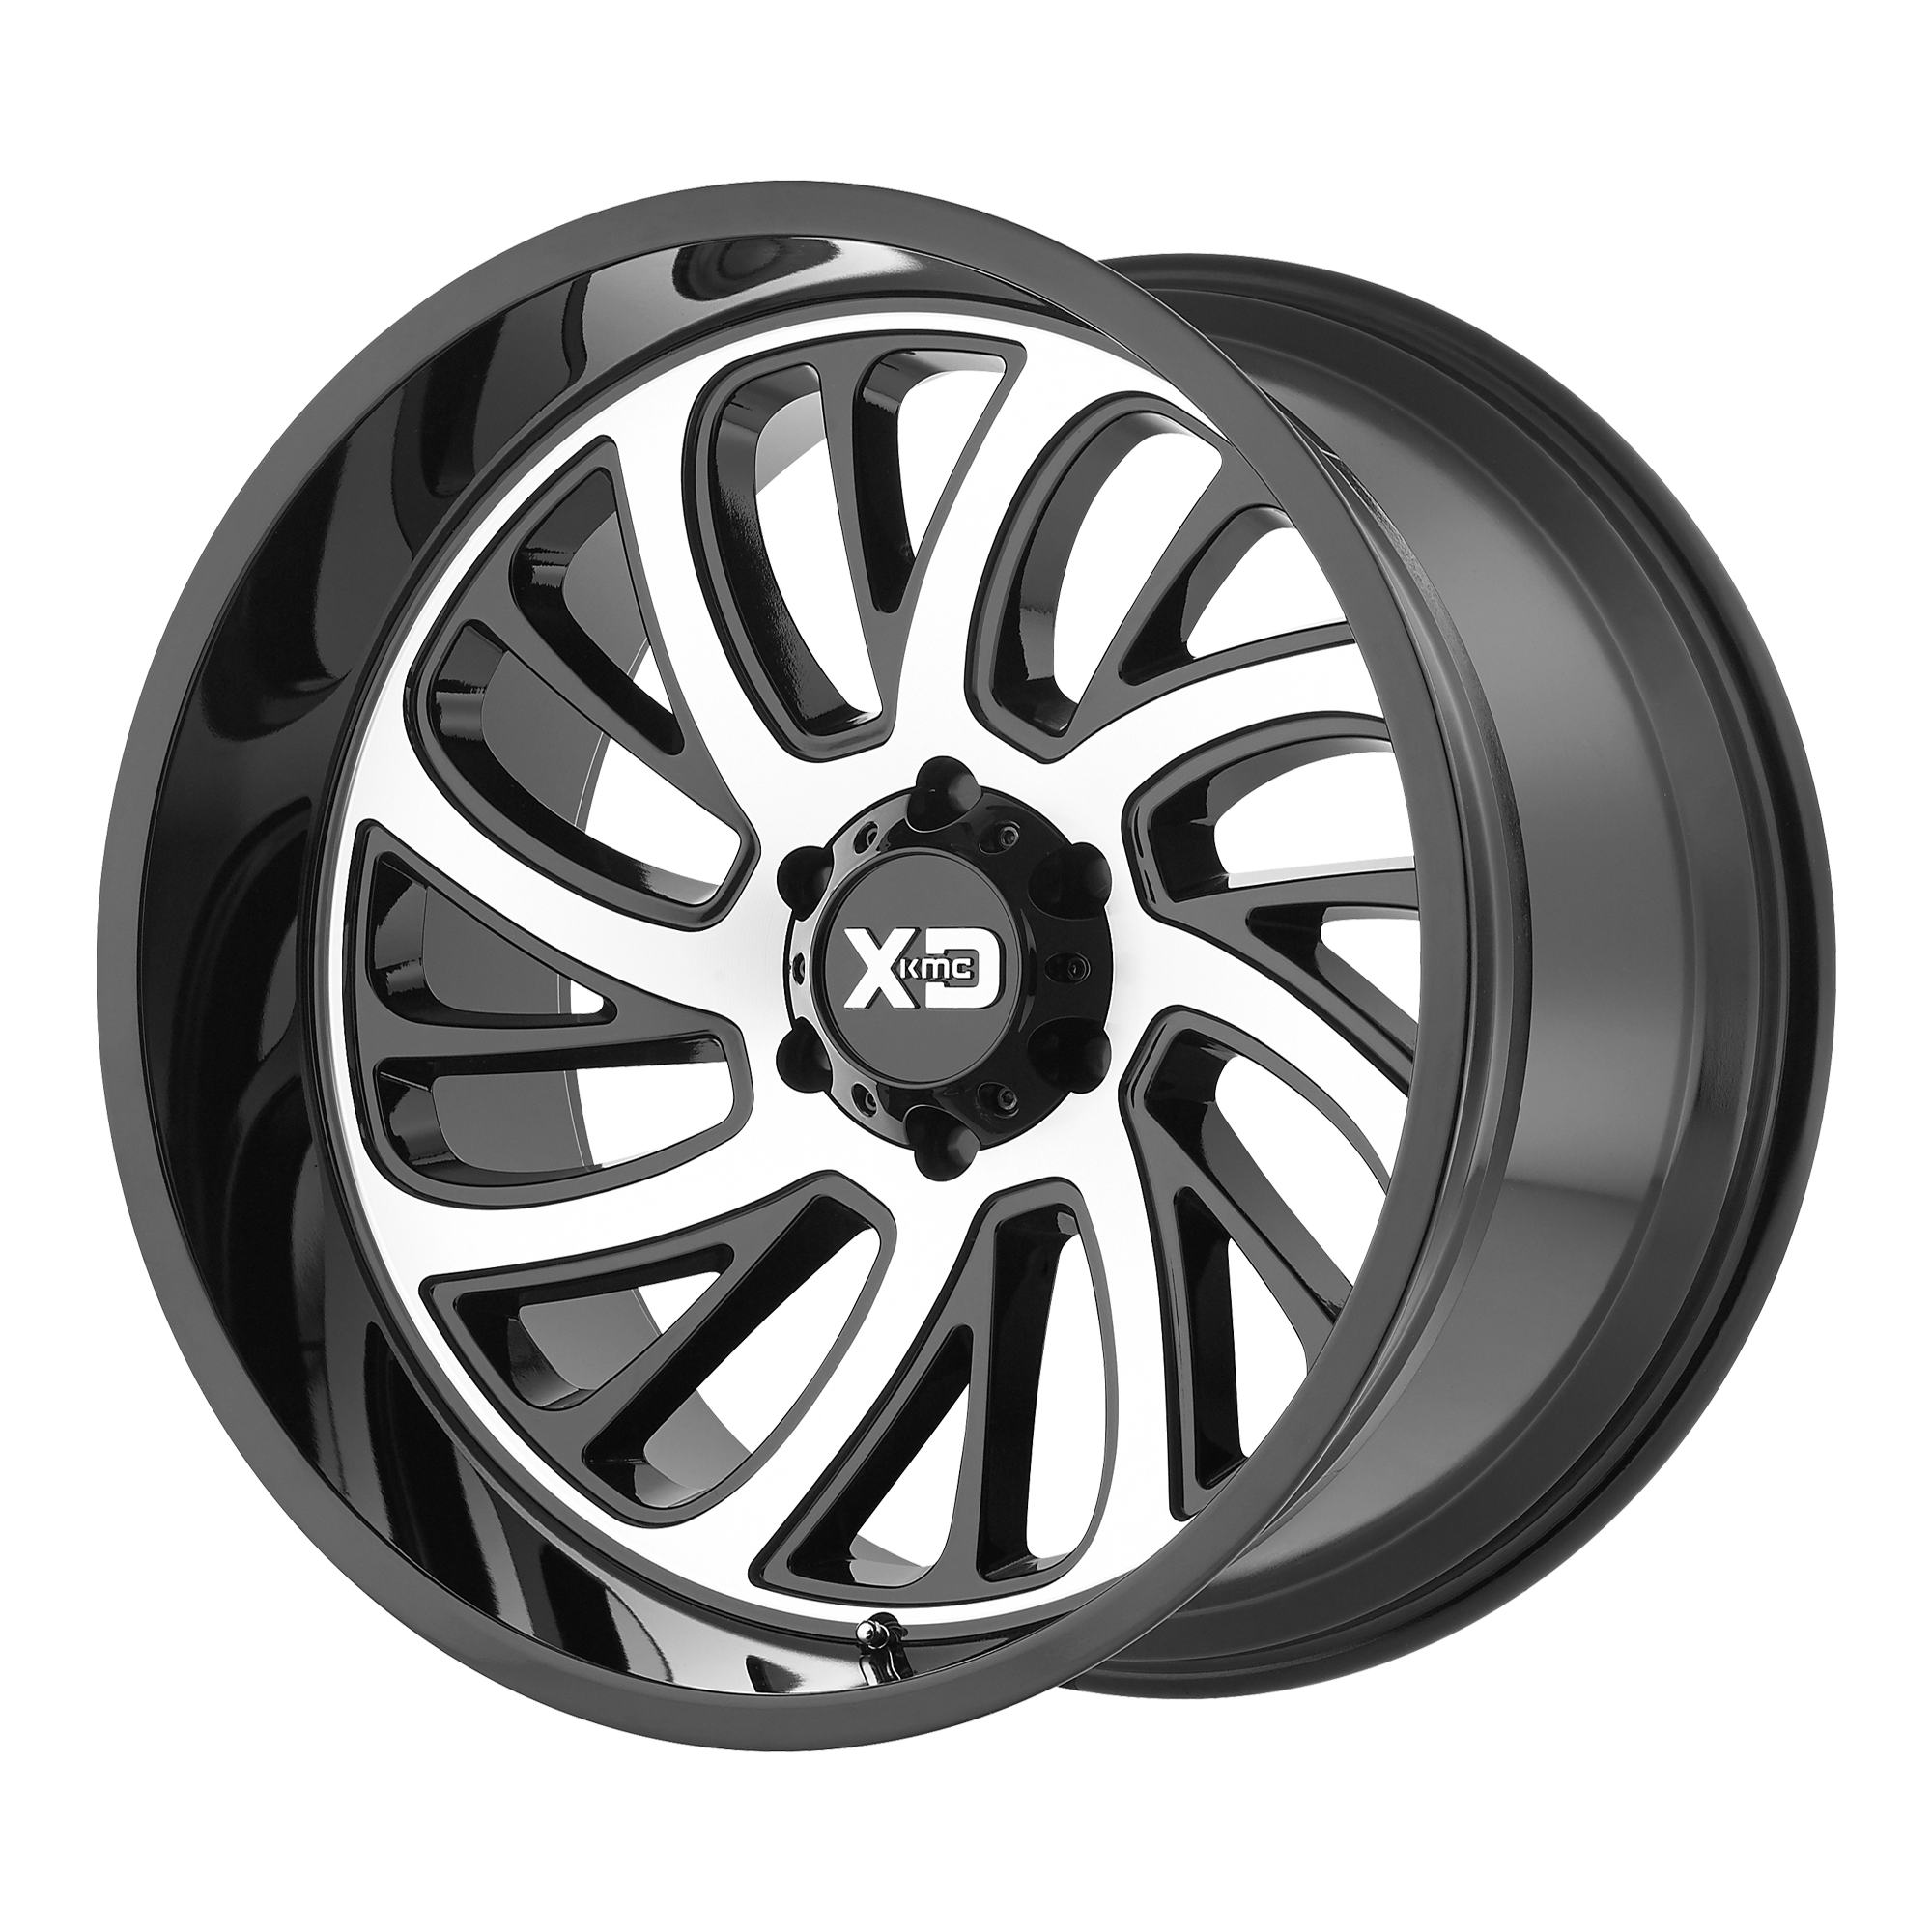 XD SERIES XD826 SURGE hliníkové disky 10x20 6x135 ET-24 Gloss Black With Machined Face